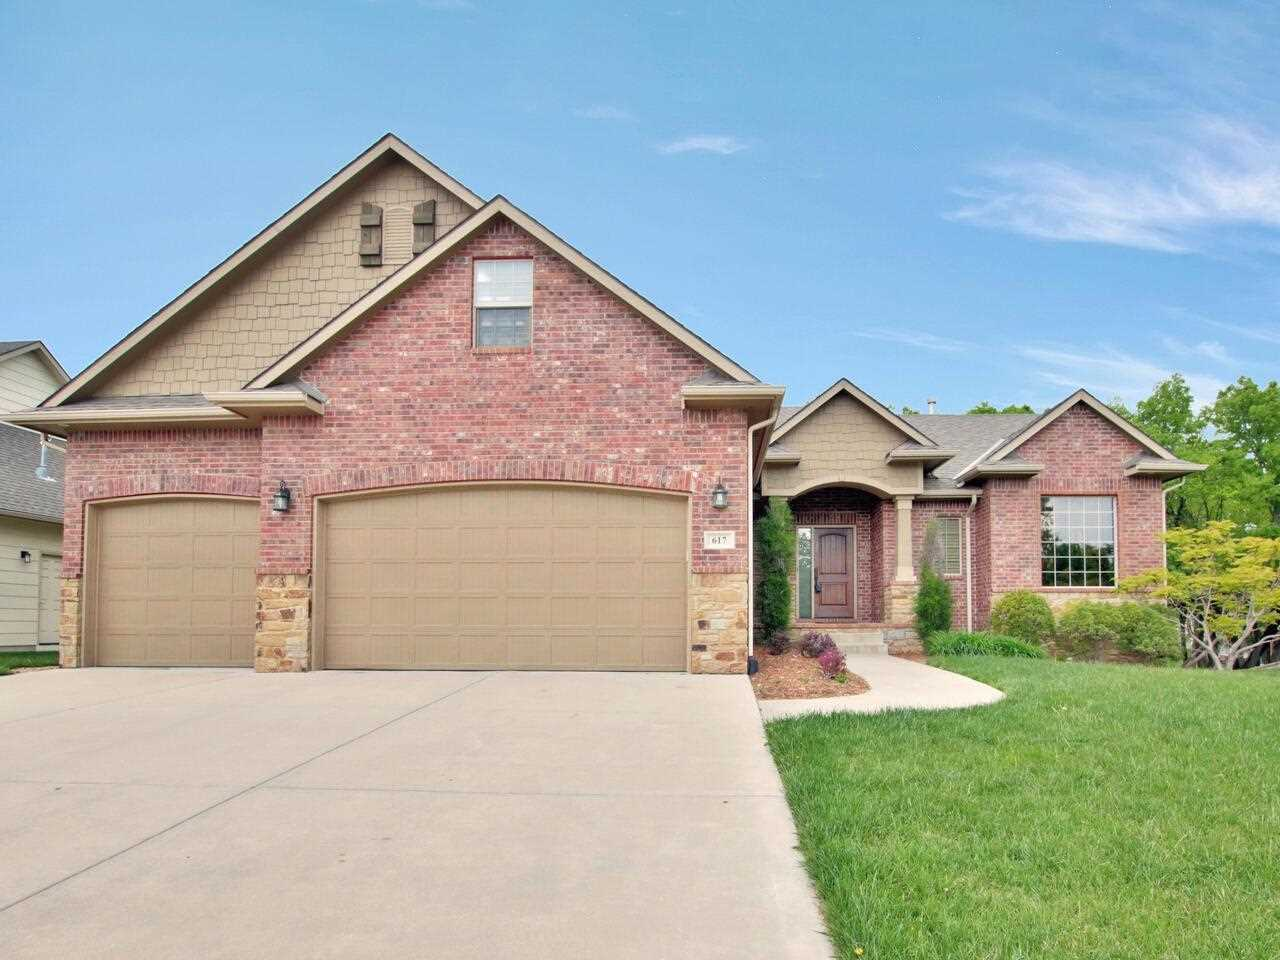 Walk into the spacious open floor plan with lots of upgrades and great features. Open concept floor